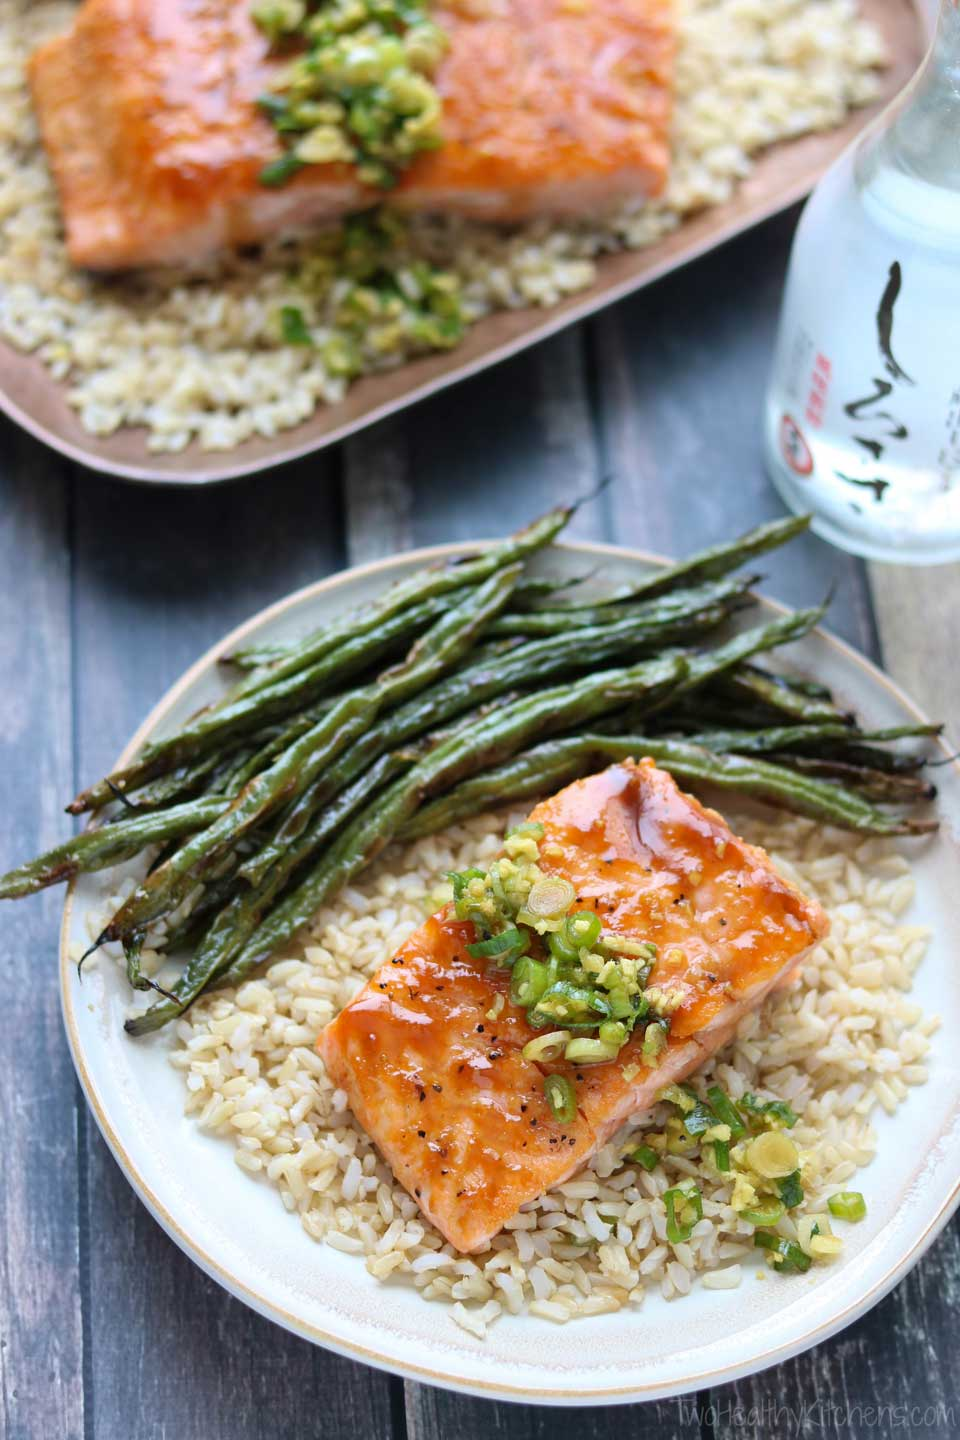 We love serving this Red Miso Salmon recipe alongside our favorite Blistered Green Beans.